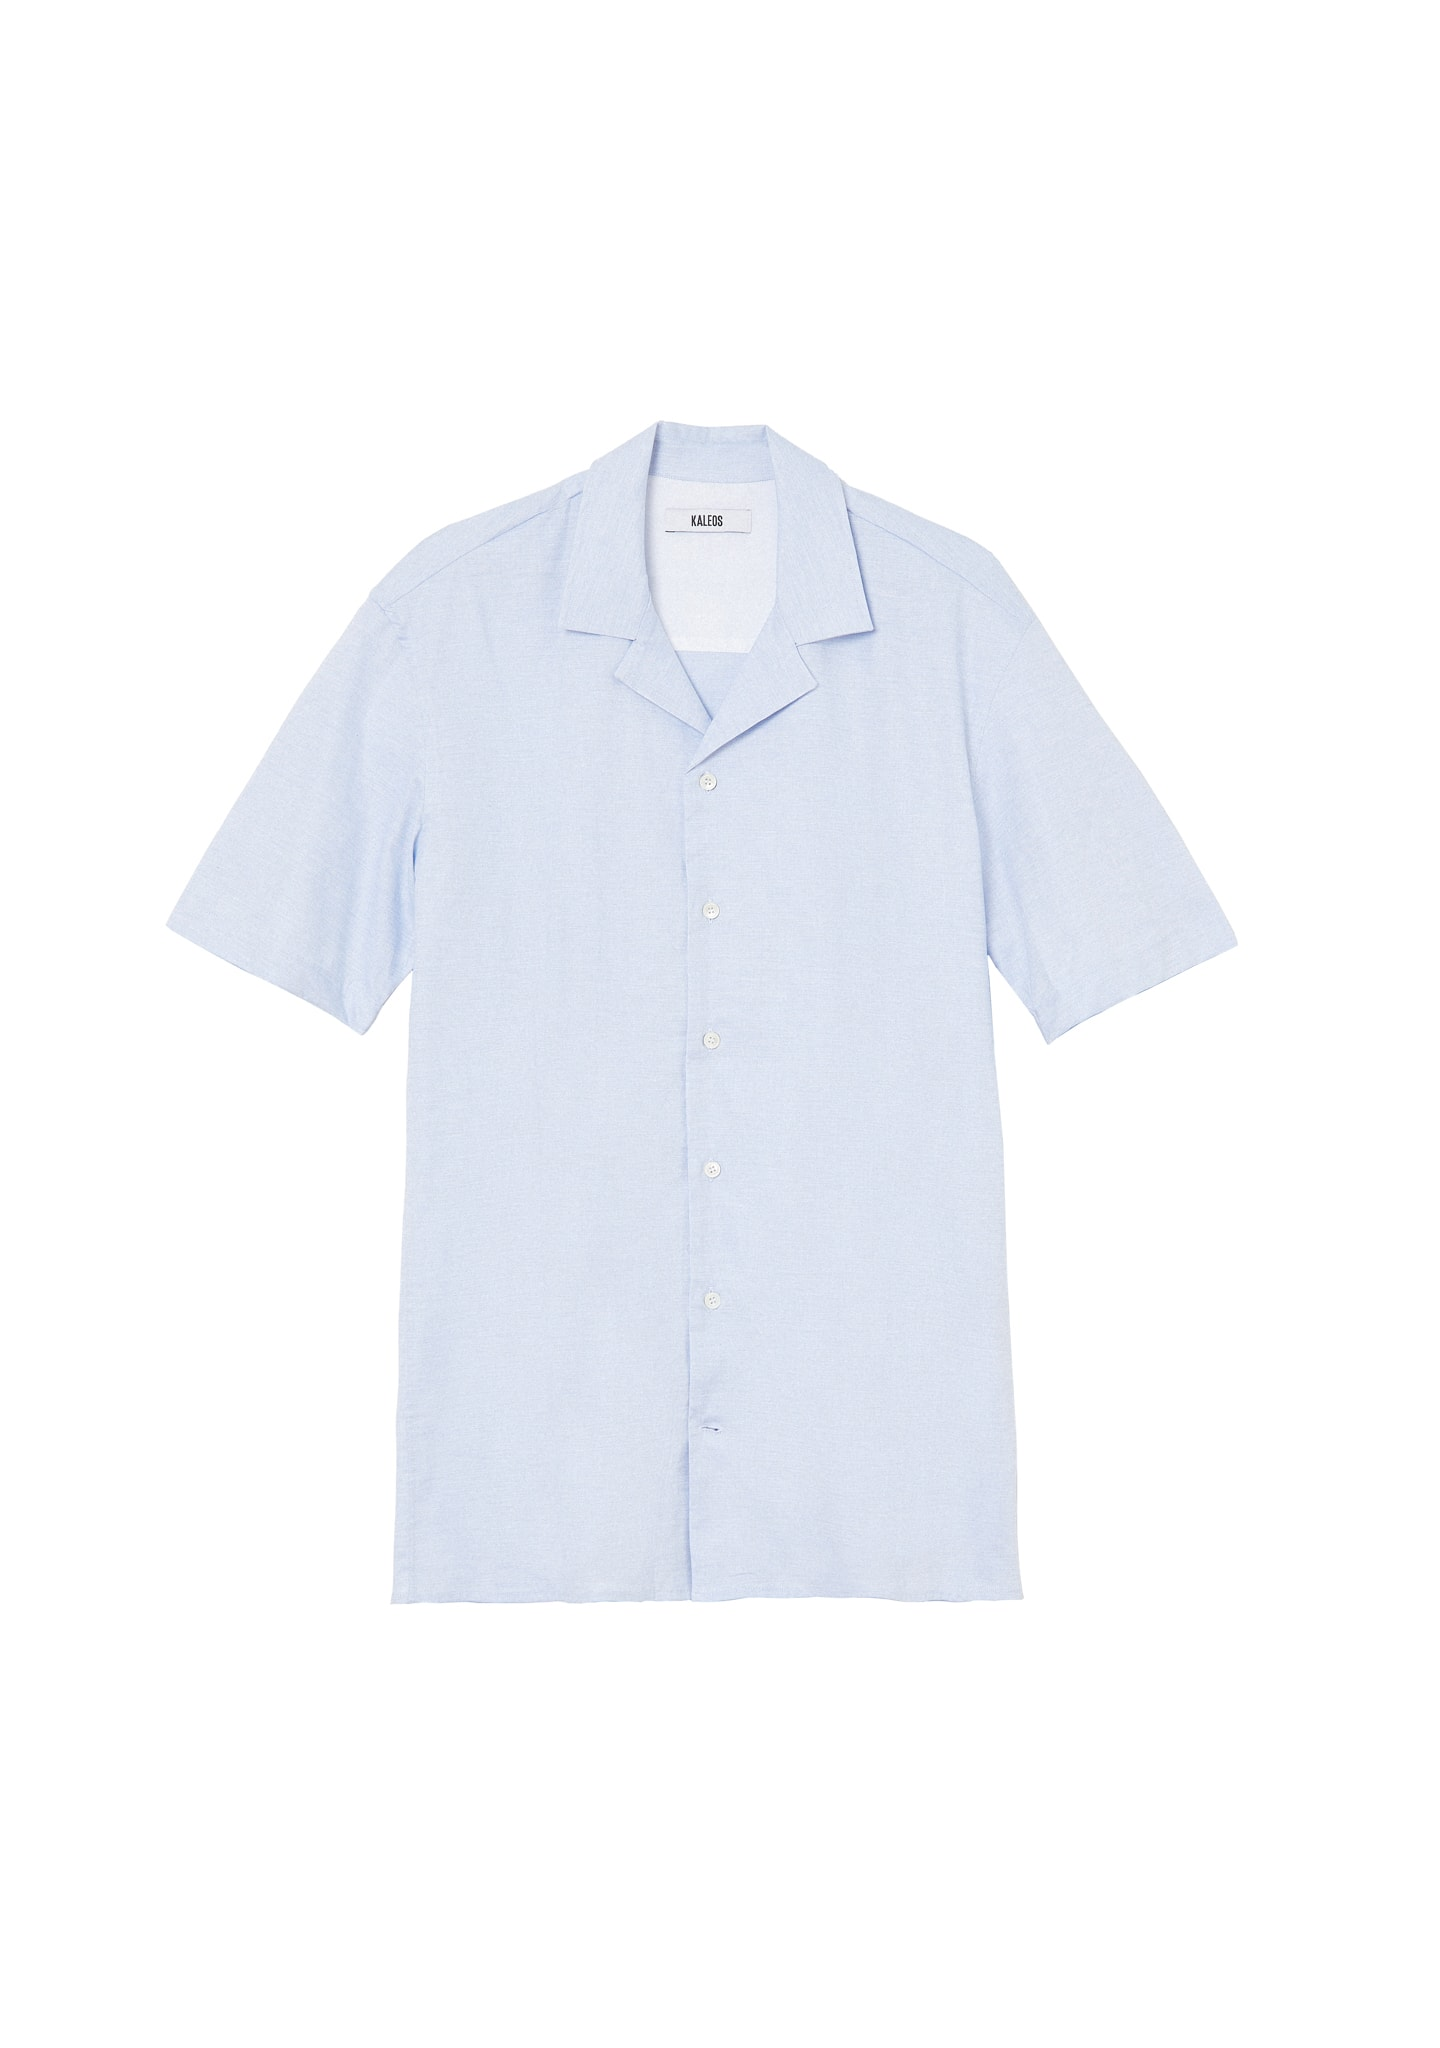 CAMP COLLAR SHORT SLEEVED SHIRT